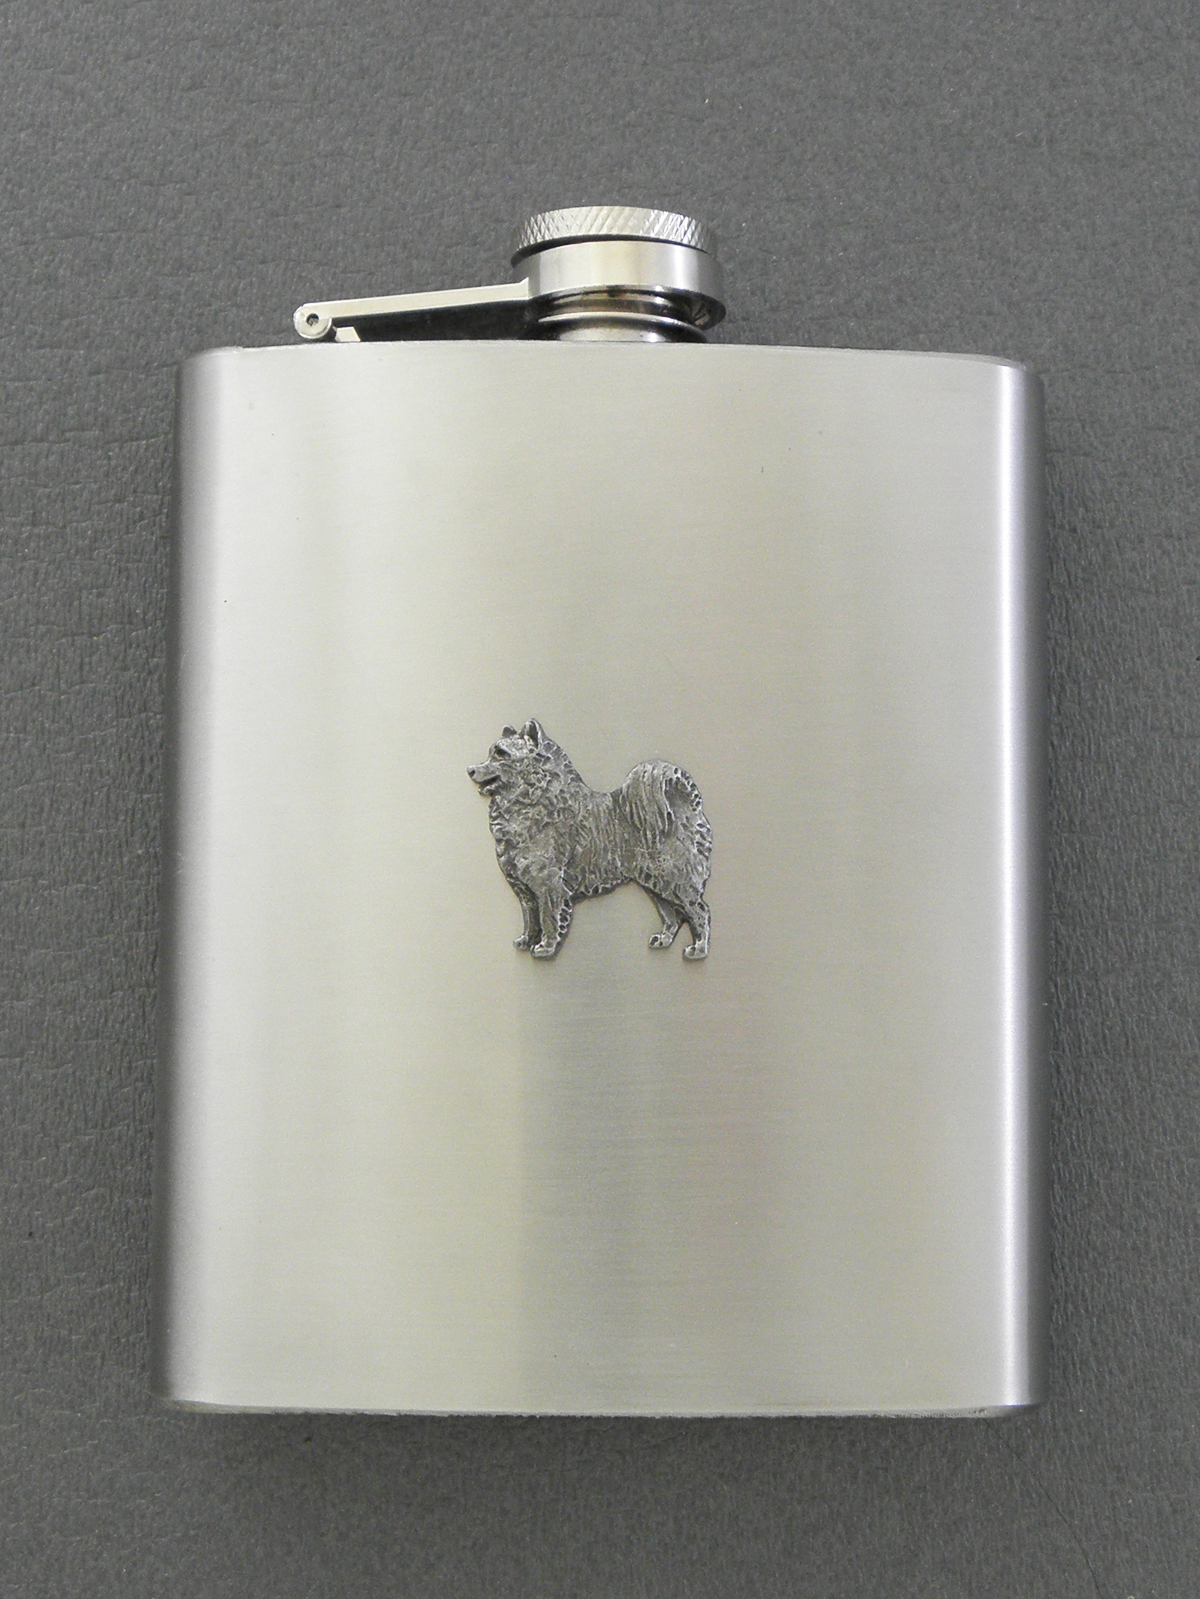 Samoyed - Hip Flask Figure